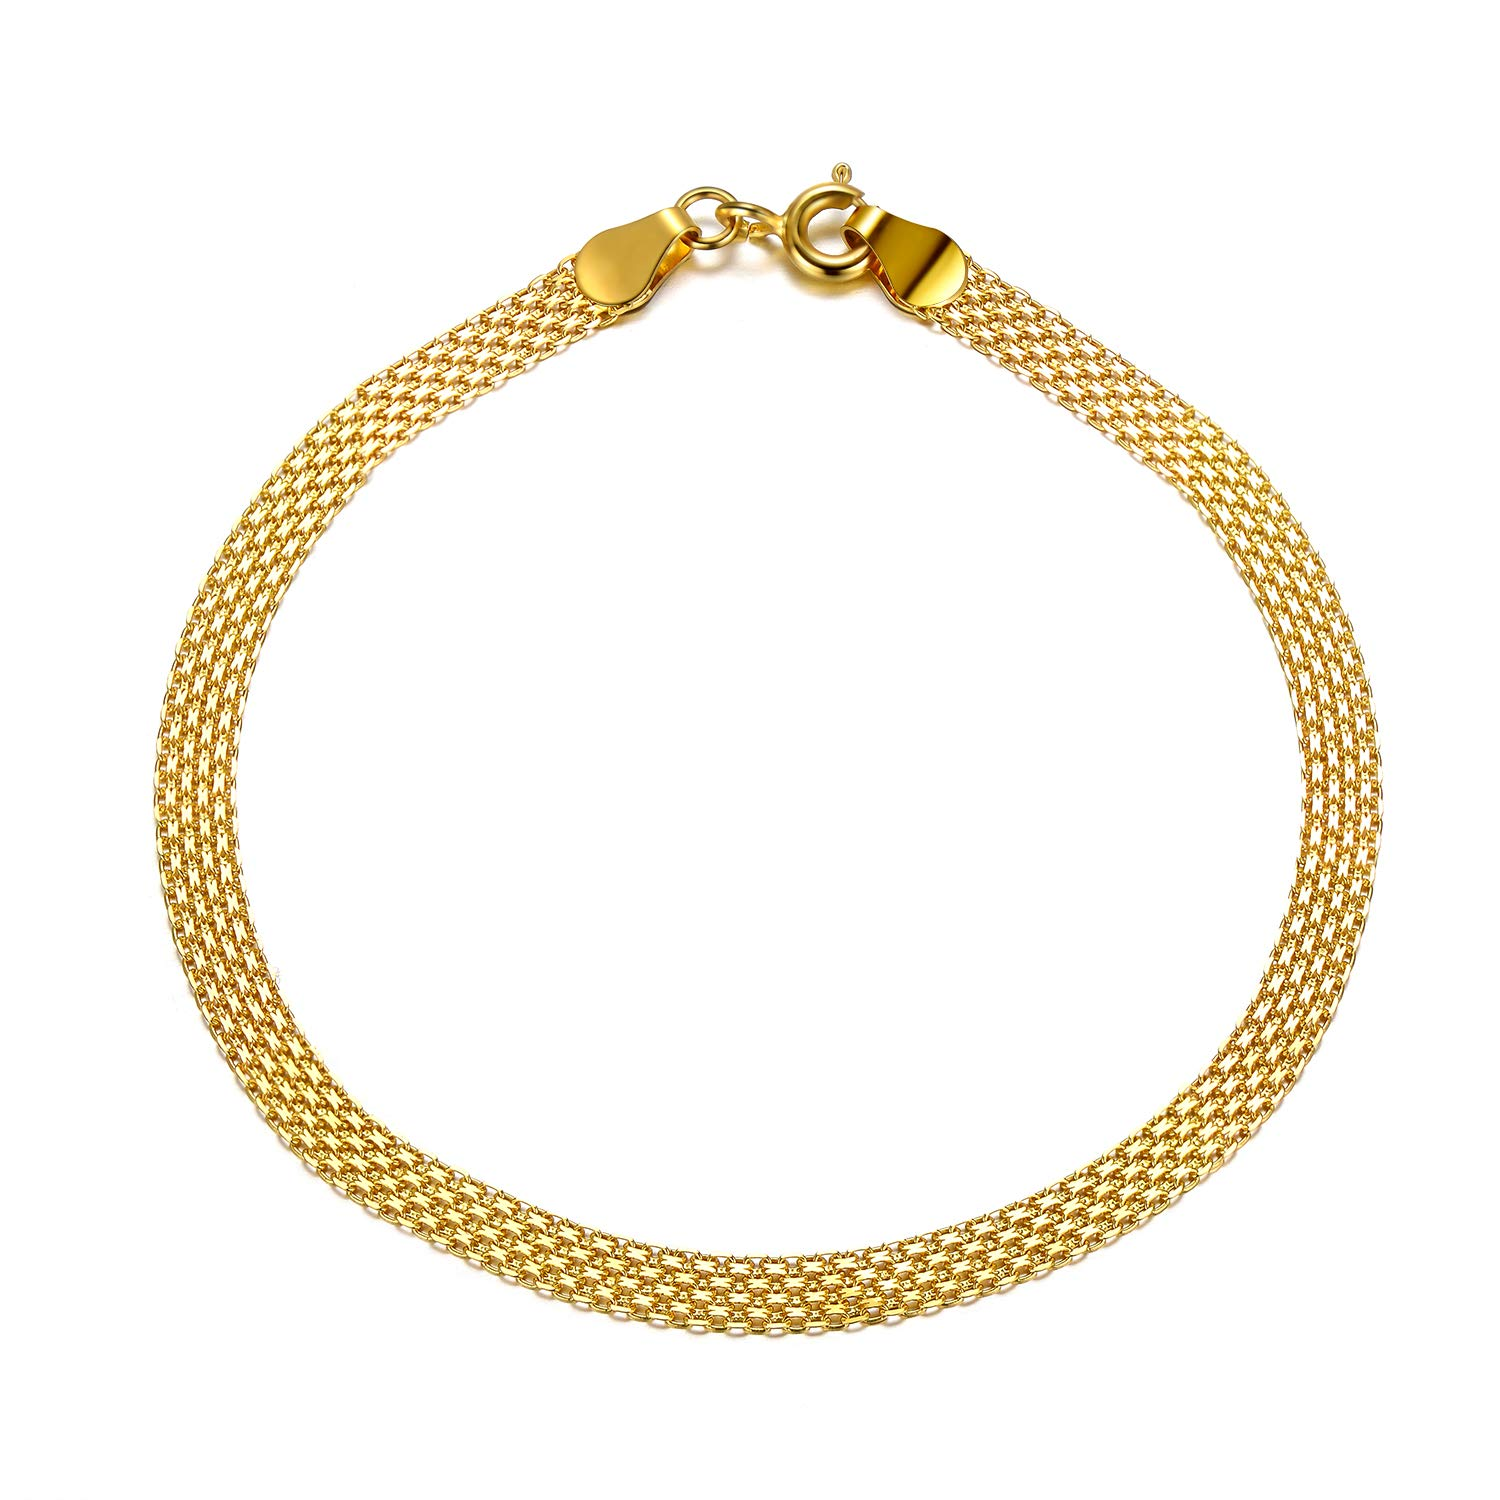 SISGEM 18k Yellow Gold Italian Chain Bracelet, Real Fine Link Jewelry for Women (3.7 mm, 7 inch) by SISGEM